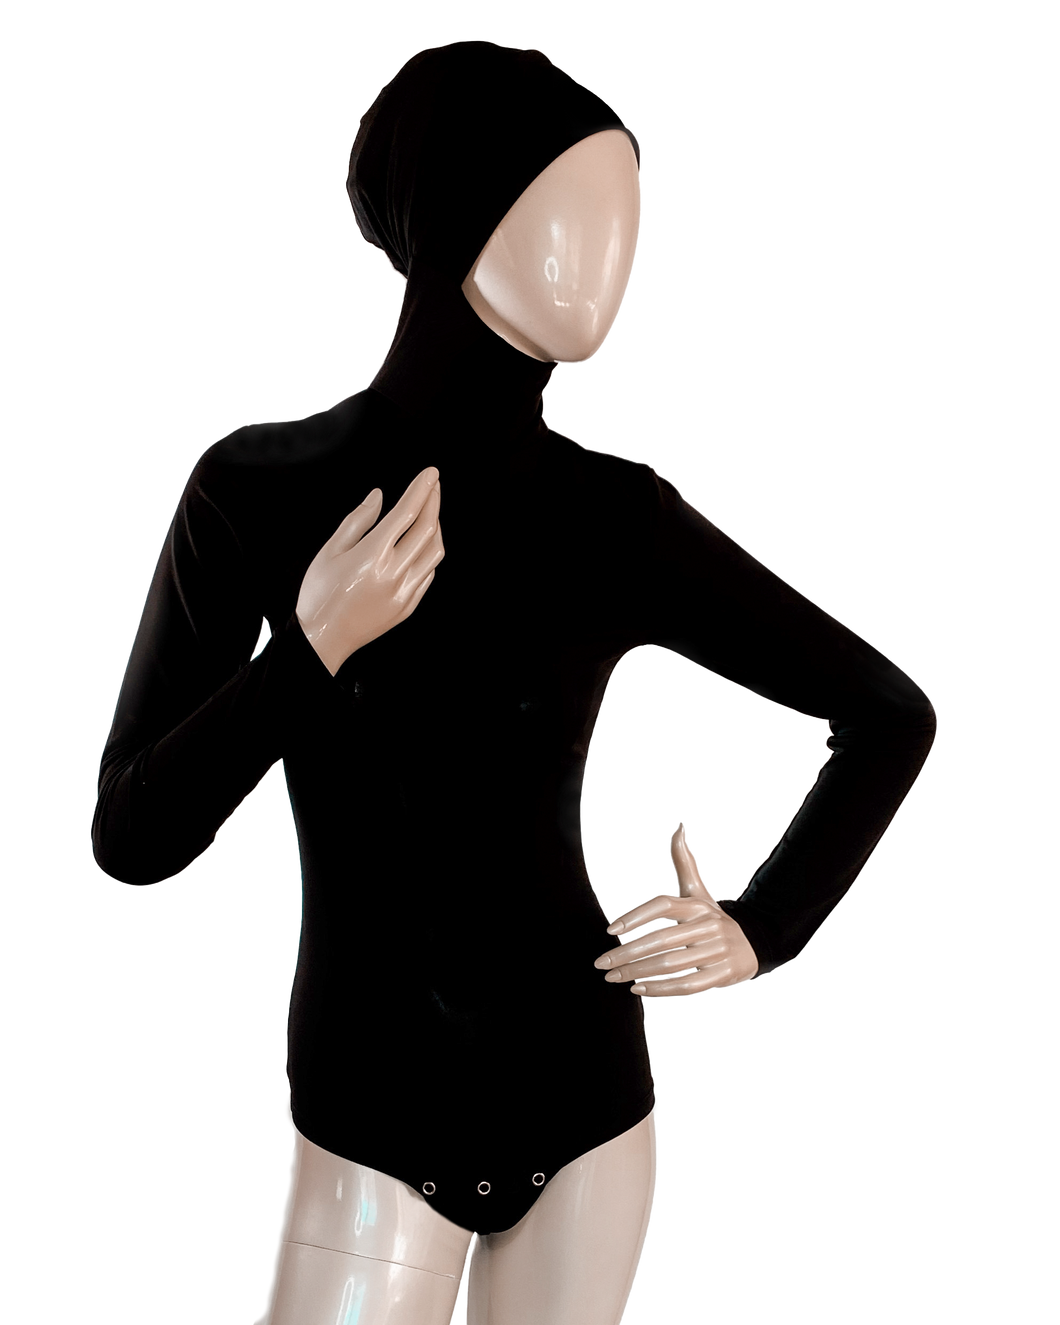 AMIRABODY HIJAB BODYSUIT FULL COVERAGE - BLACK